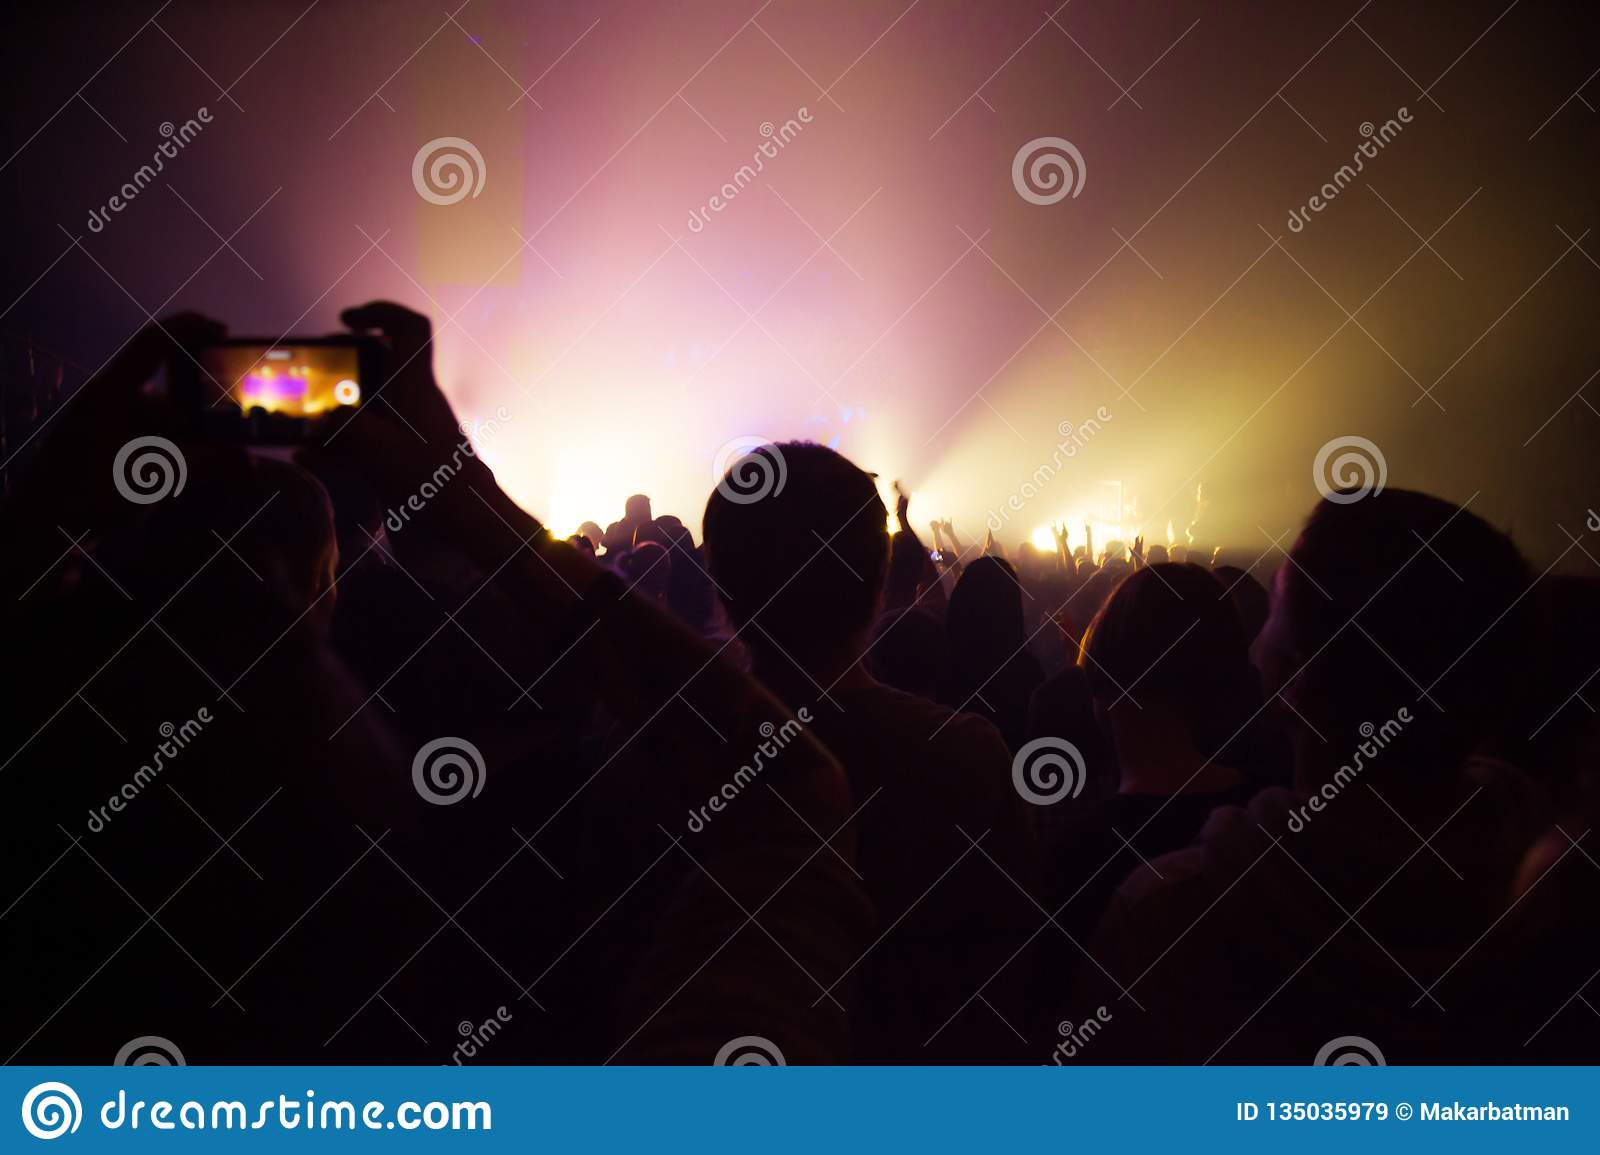 People watching a concert and someone shooting photo and video with a phone